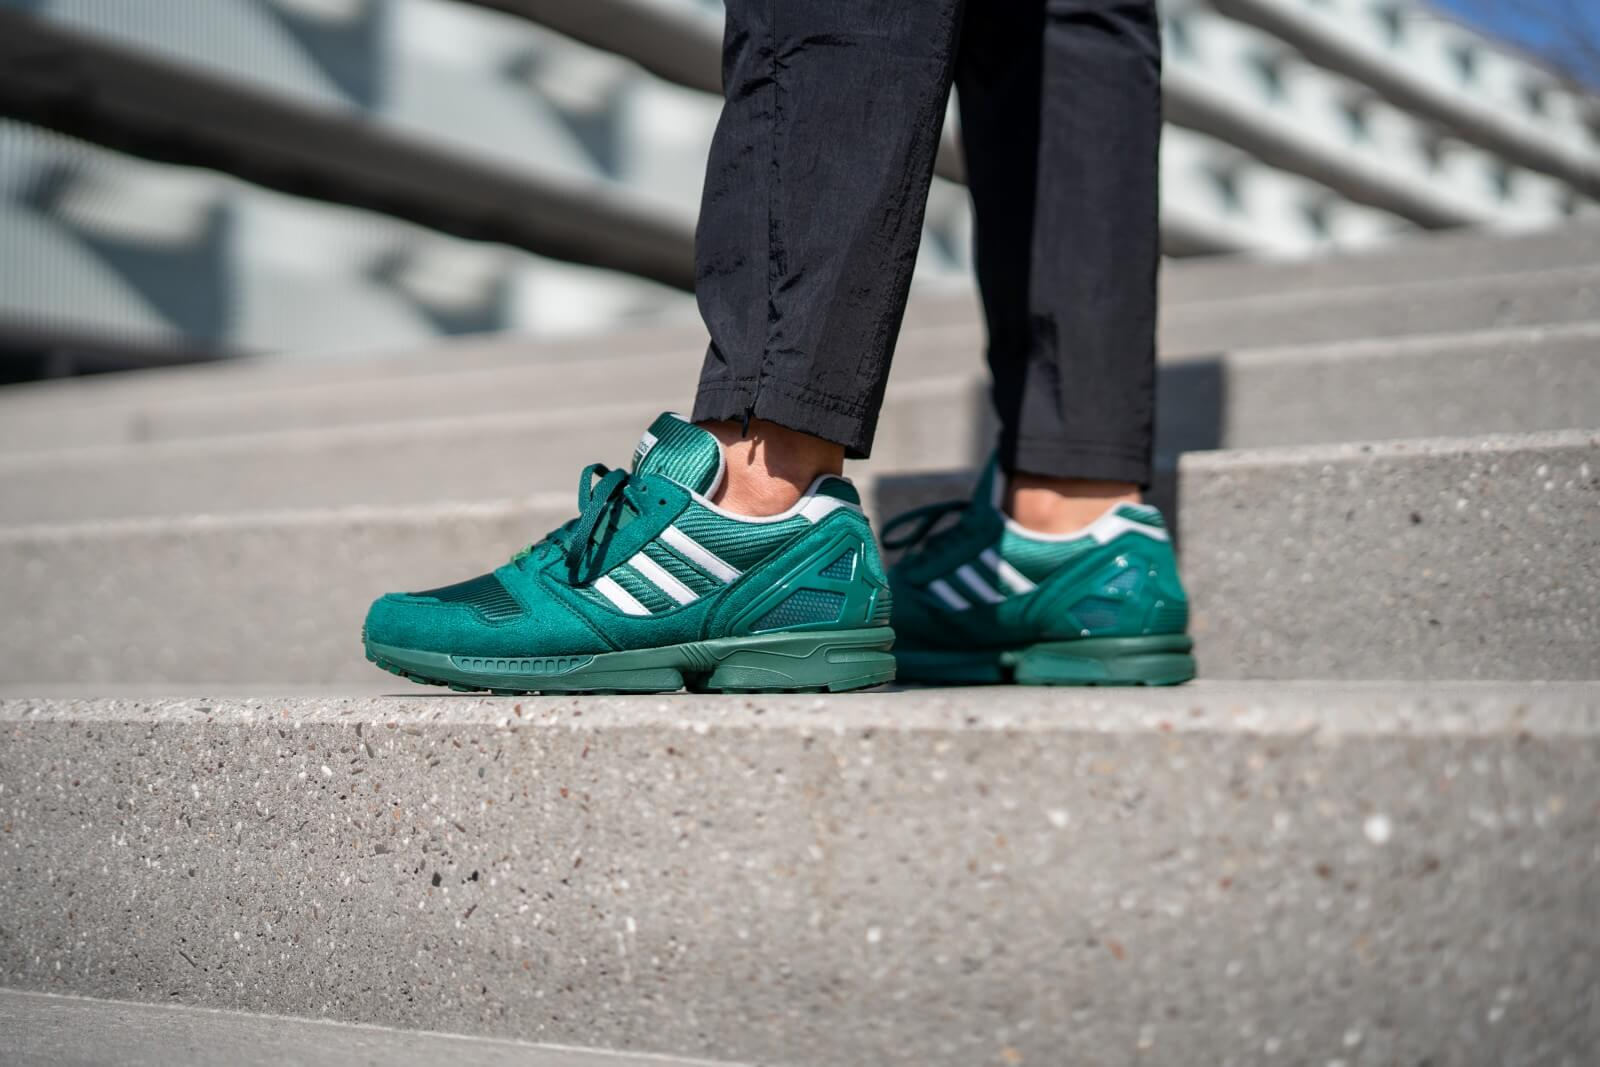 Descuido Actualizar caballo de fuerza  Adidas ZX 8000 Collegiate Green/Grey Two - FV3269